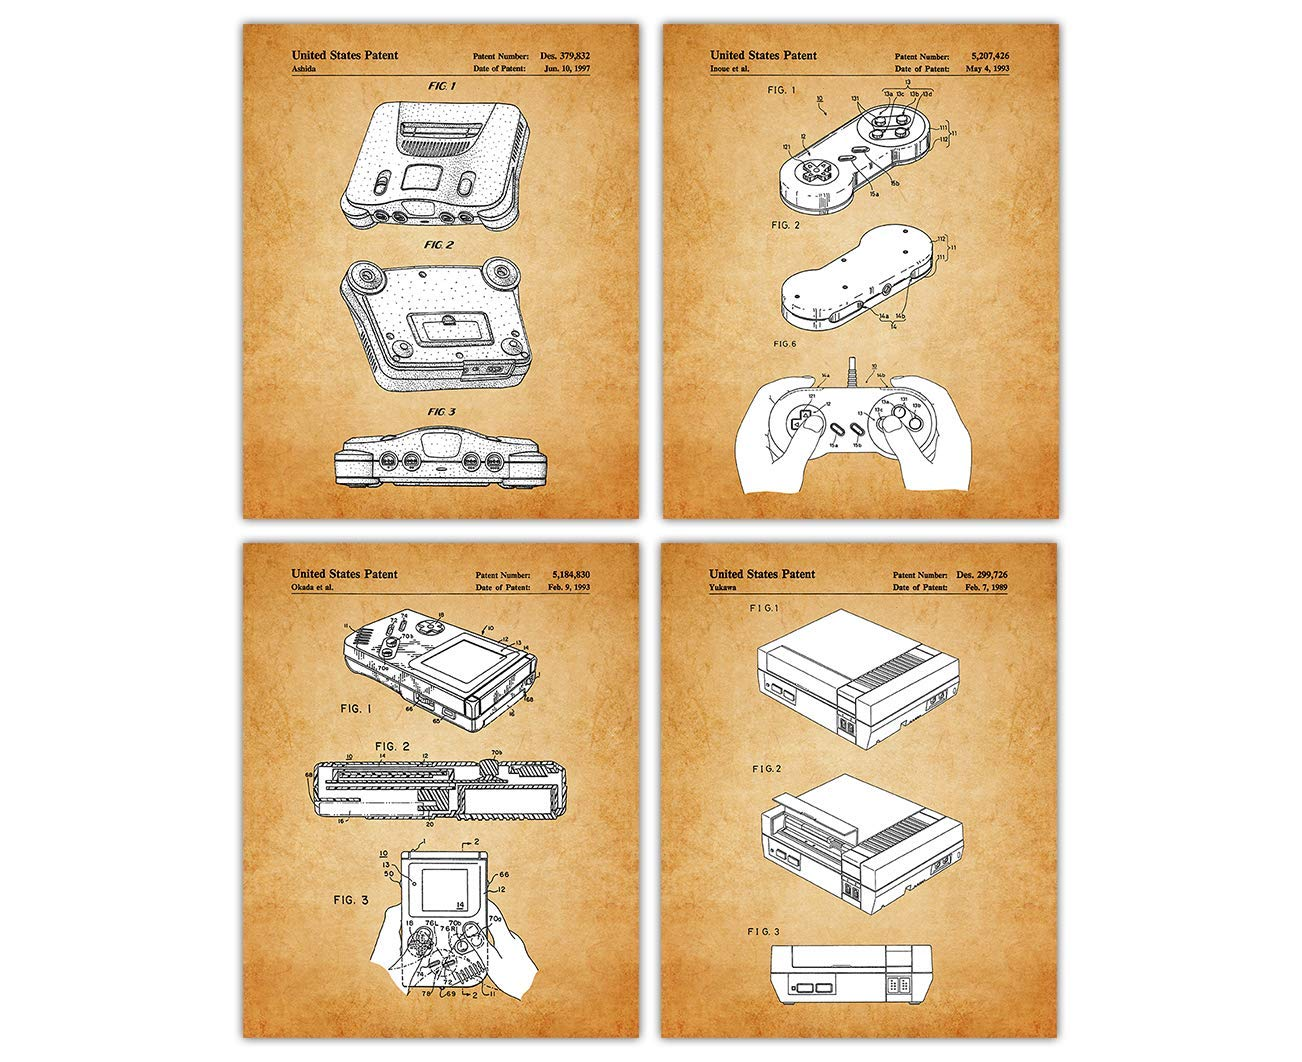 Vintage Video Game Patent Poster Prints – Set of 4 Unframed 8x10 Photos - Unique Wall Art for Home, Room, Dorm & Office Decor - Great Gift Idea Under $20 for Gamers & Video Game Enthusiasts